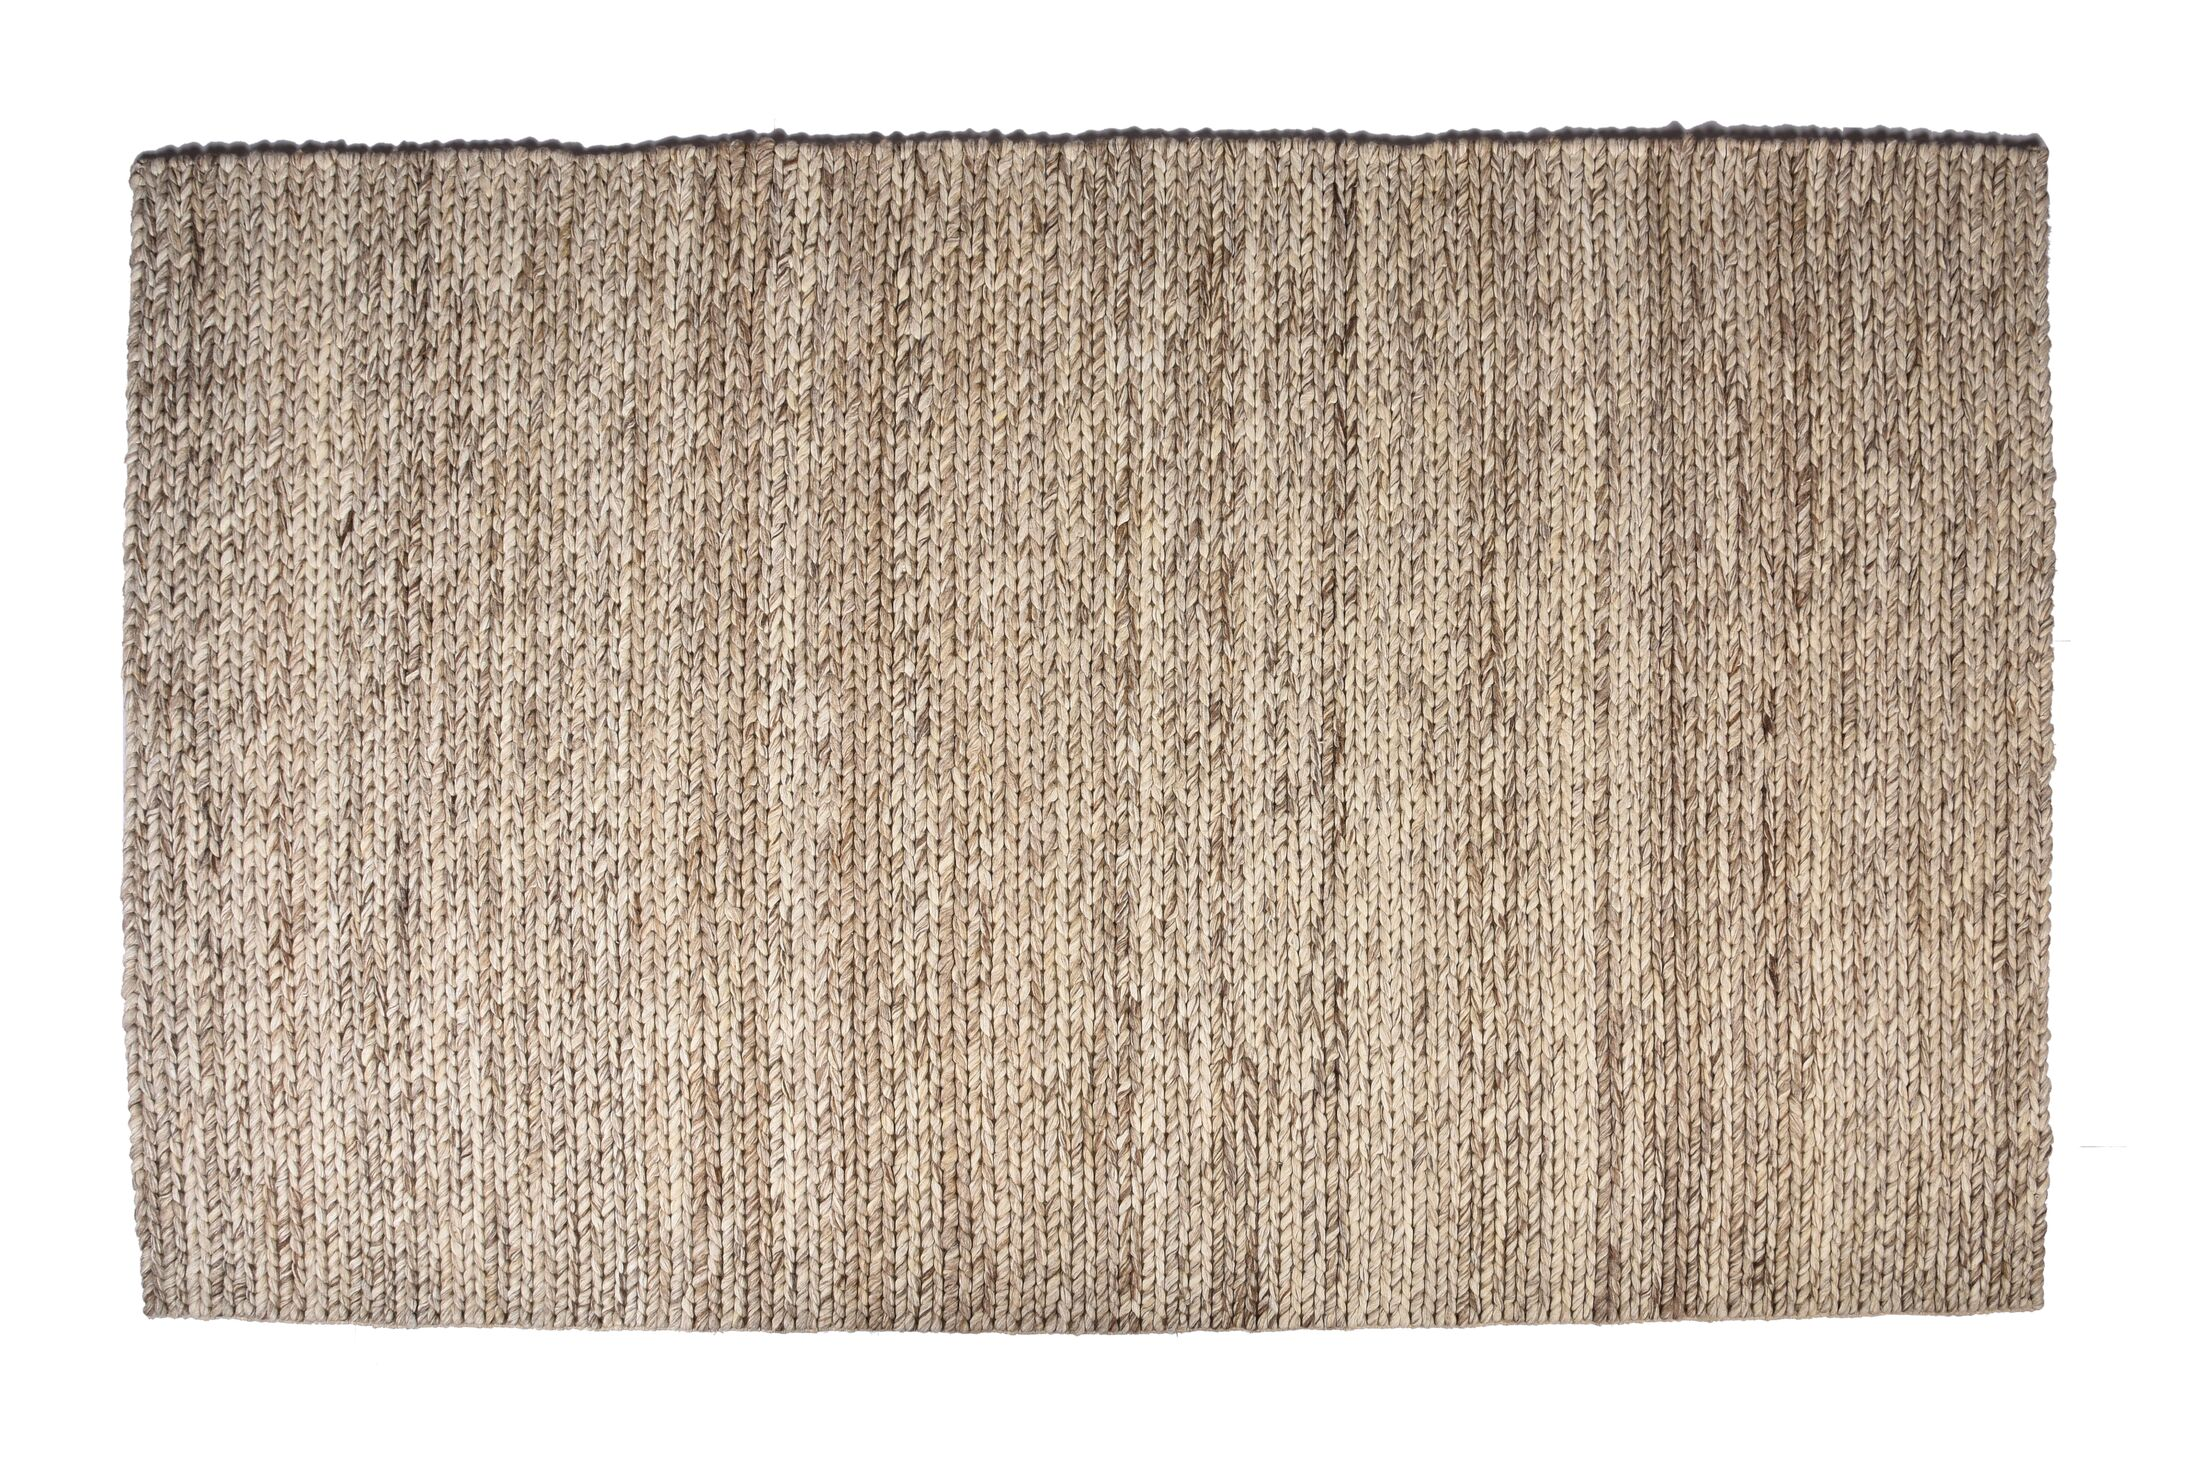 Colton Hand-Woven Wool Copper Area Rug Rug Size: Rectangle 8' x 10'